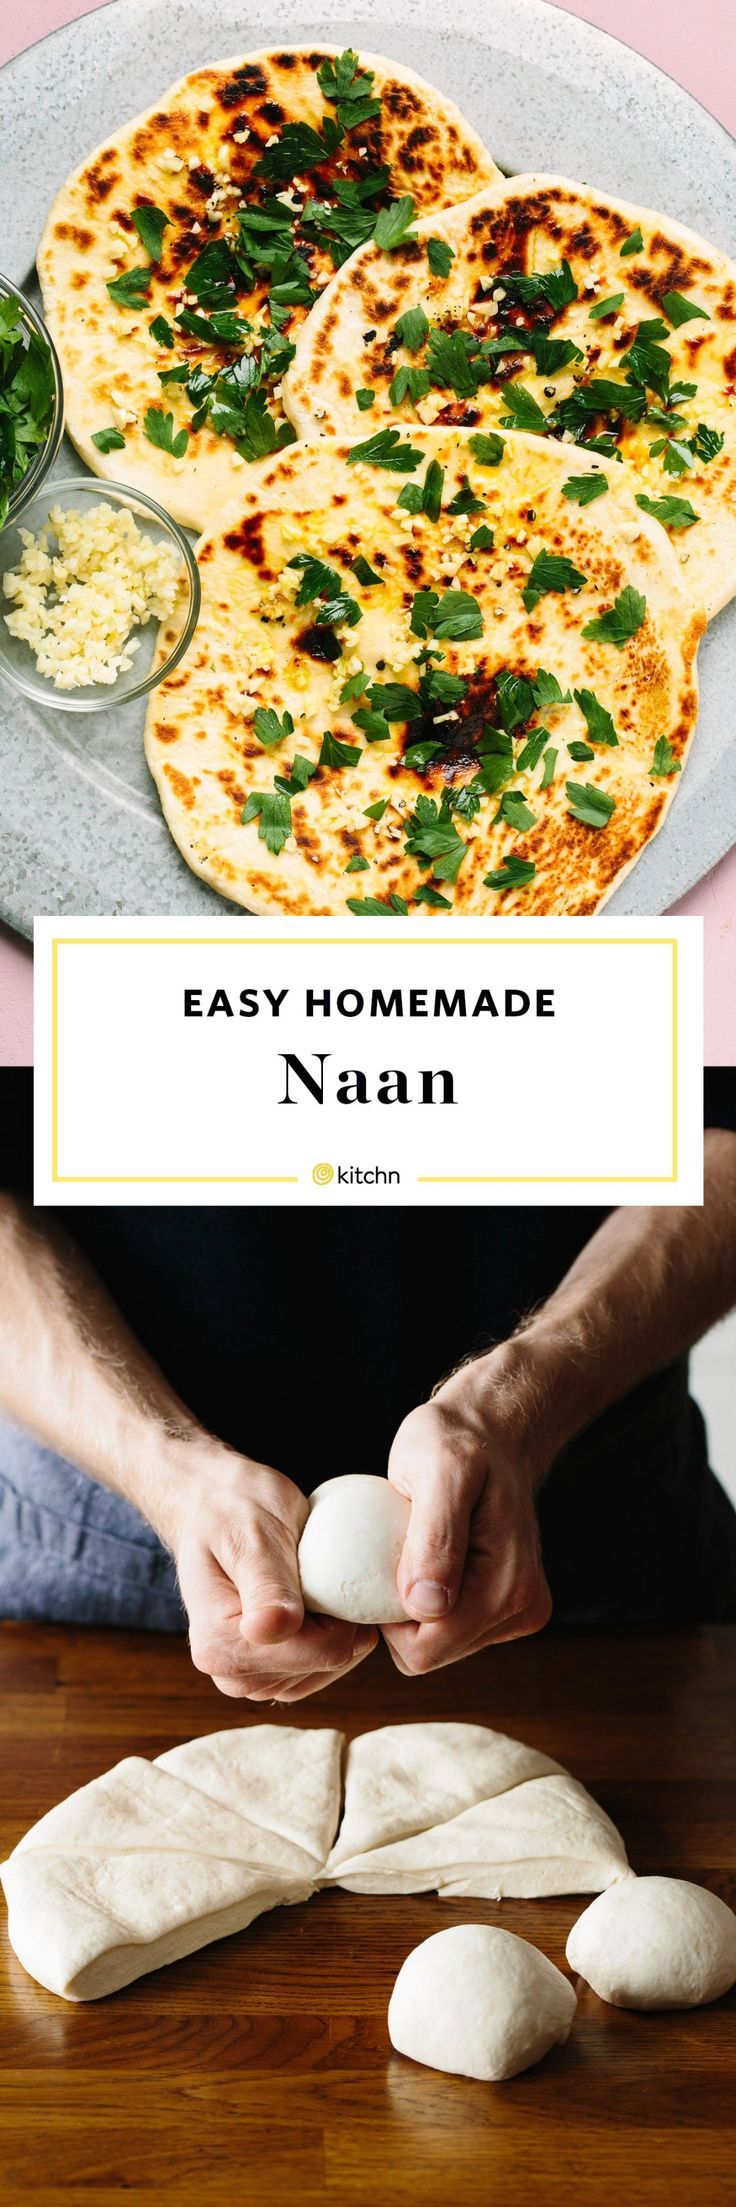 How To Make An Easy Naan Bread Recipe at Home. Homemade Indian naan is surprisingly simple to make from scratch! Use it for a quick weeknight meal of pizza for dinner, or use it for a wrap or sandwich at lunch. Also, it's obviously great with curry or stew! You'll need yeast, flour, salt, and yogurt.